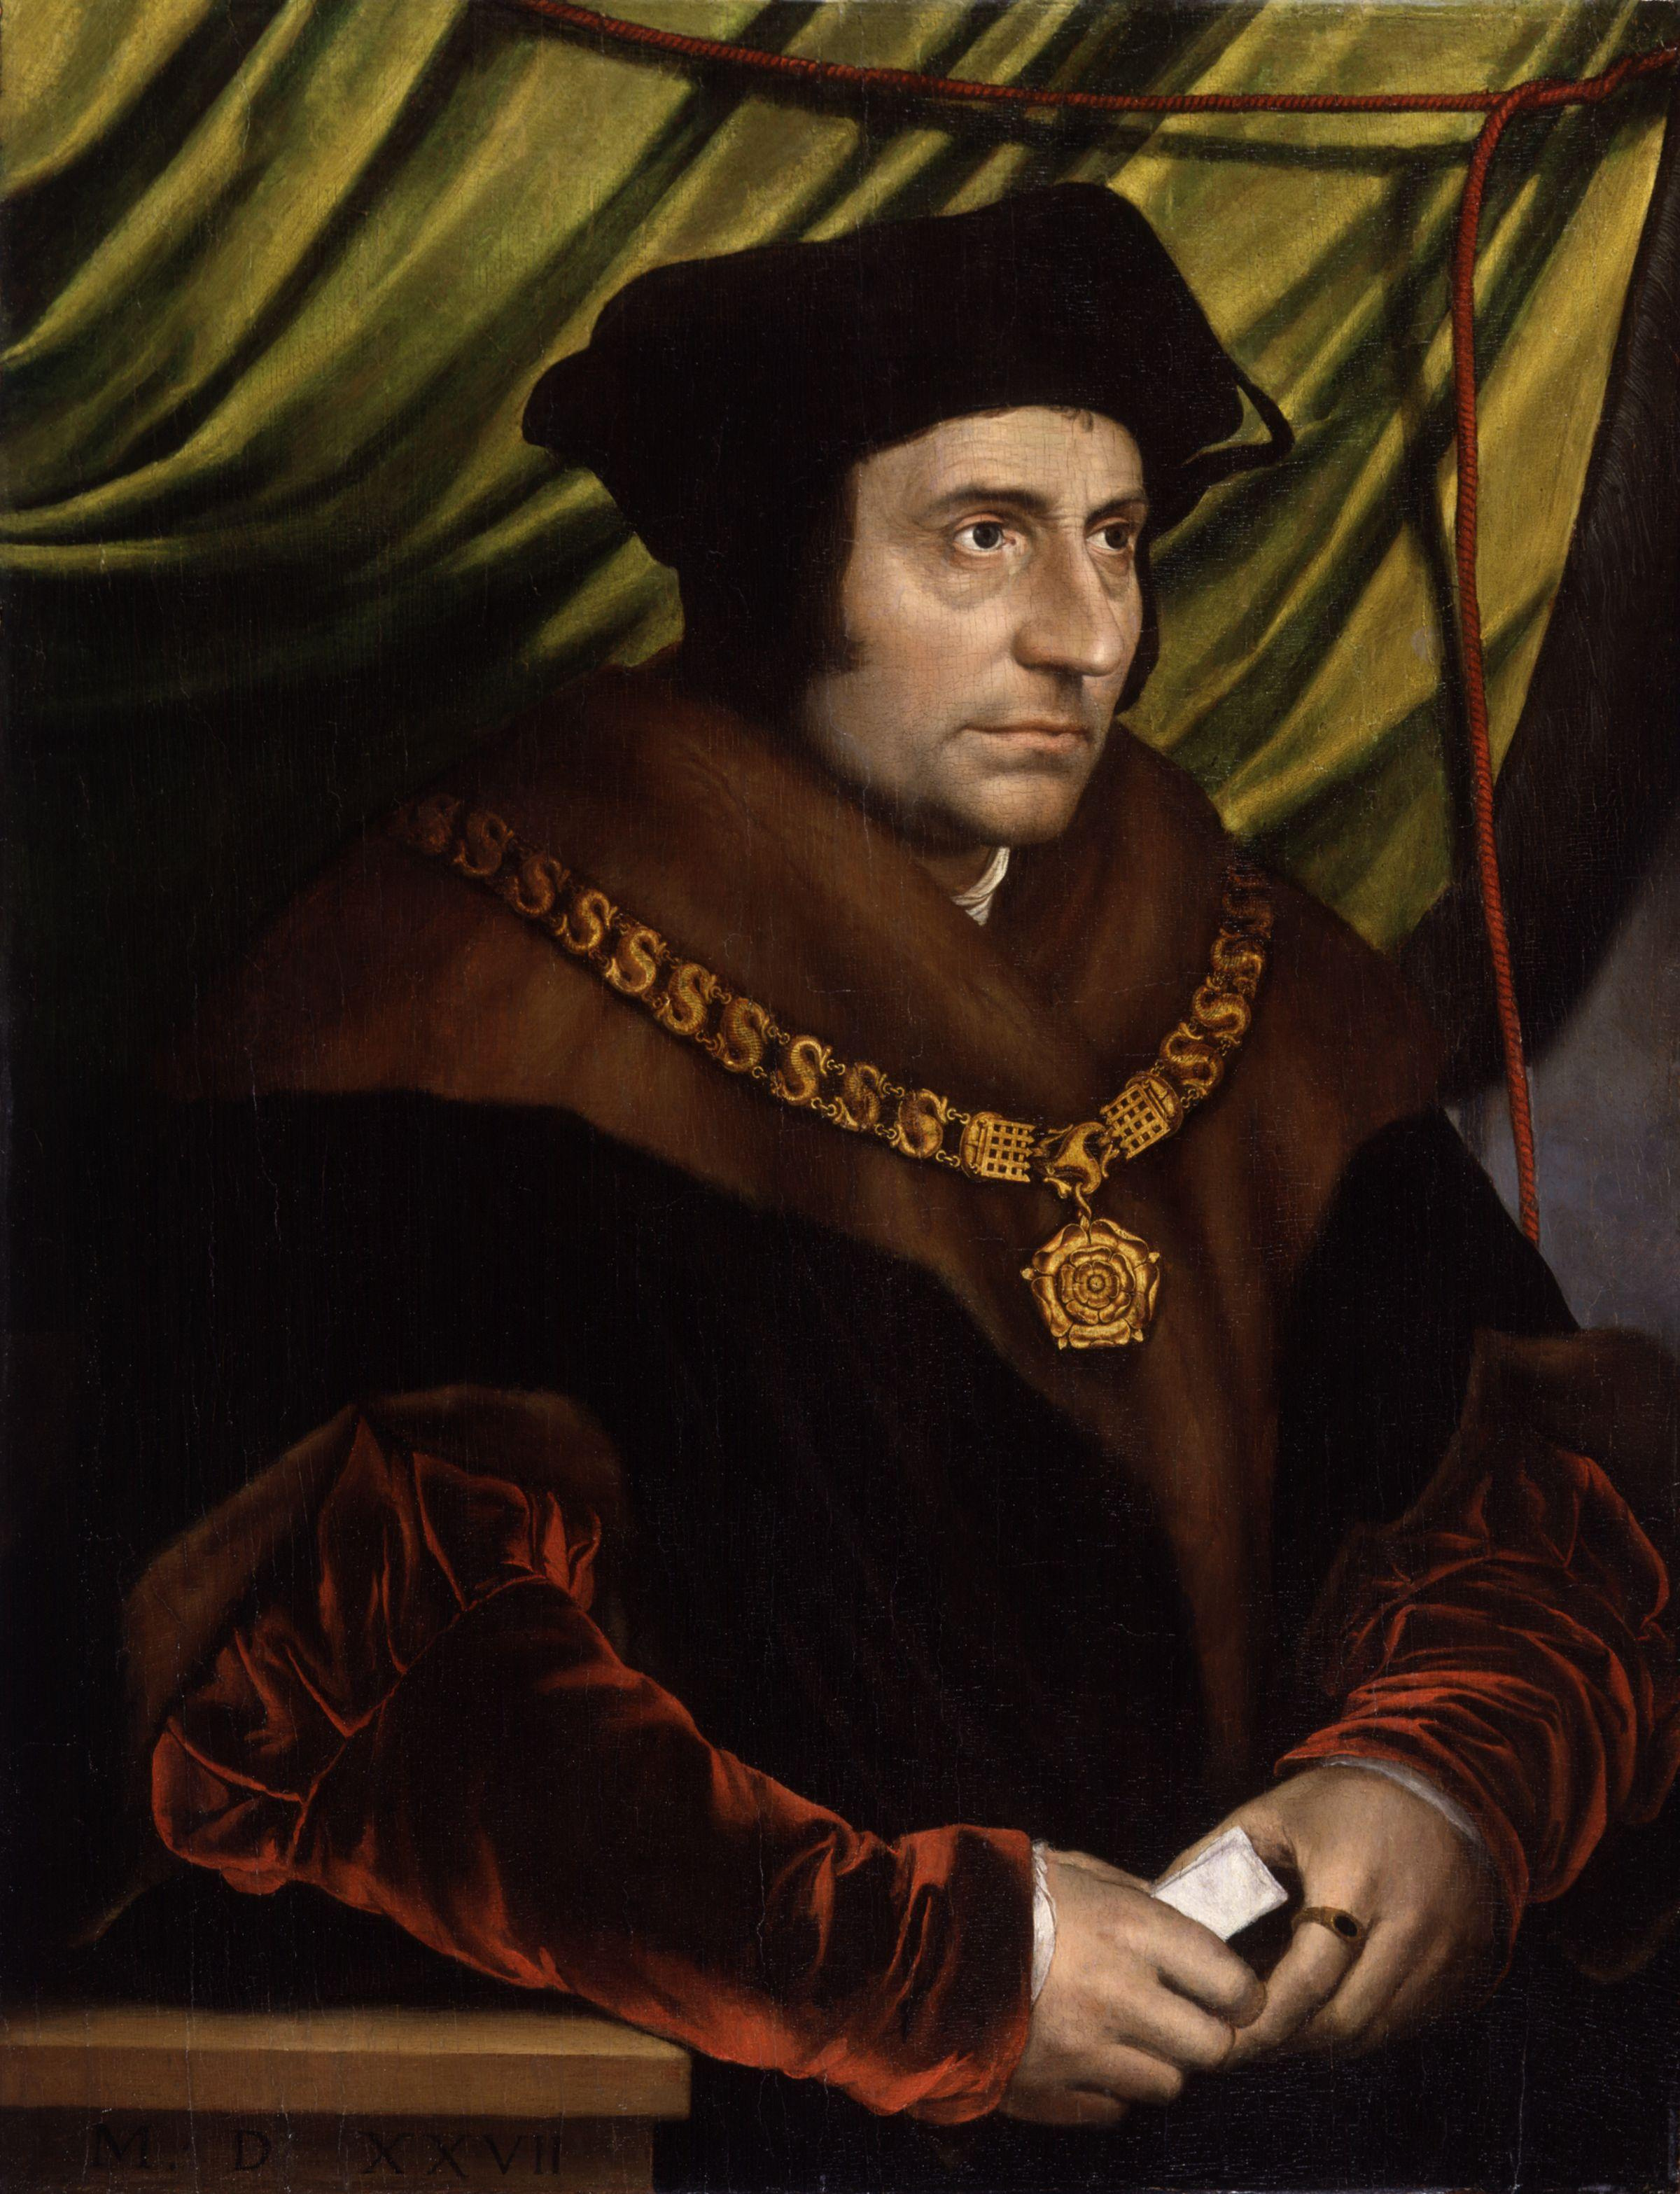 Thomas More httpsuploadwikimediaorgwikipediacommons55